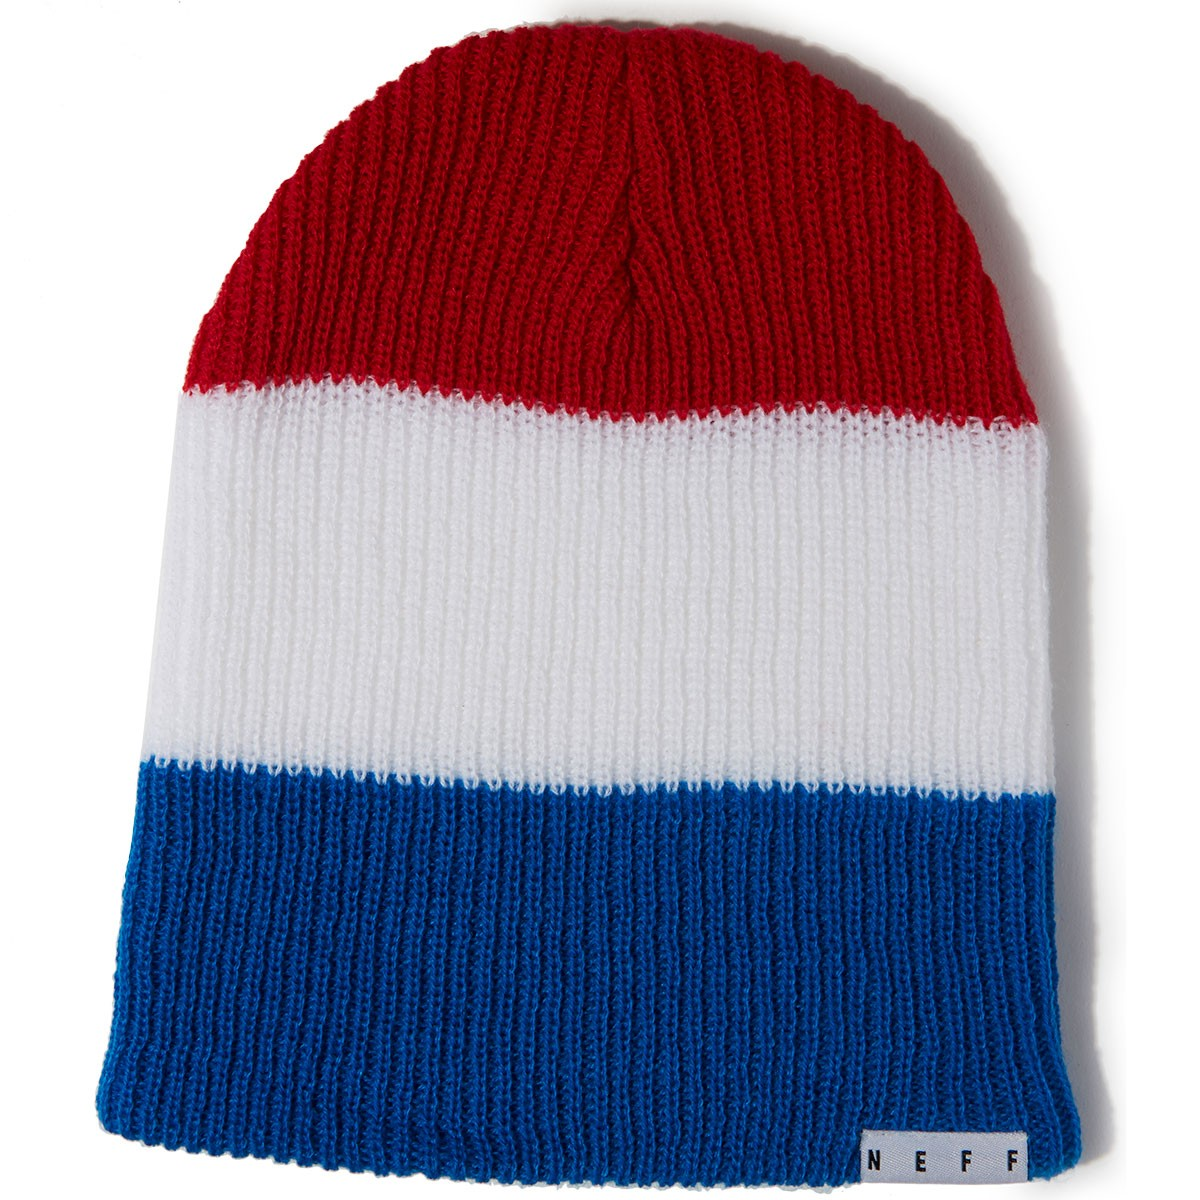 Neff Trio Beanie - Red White Blue 158cb8d64e9